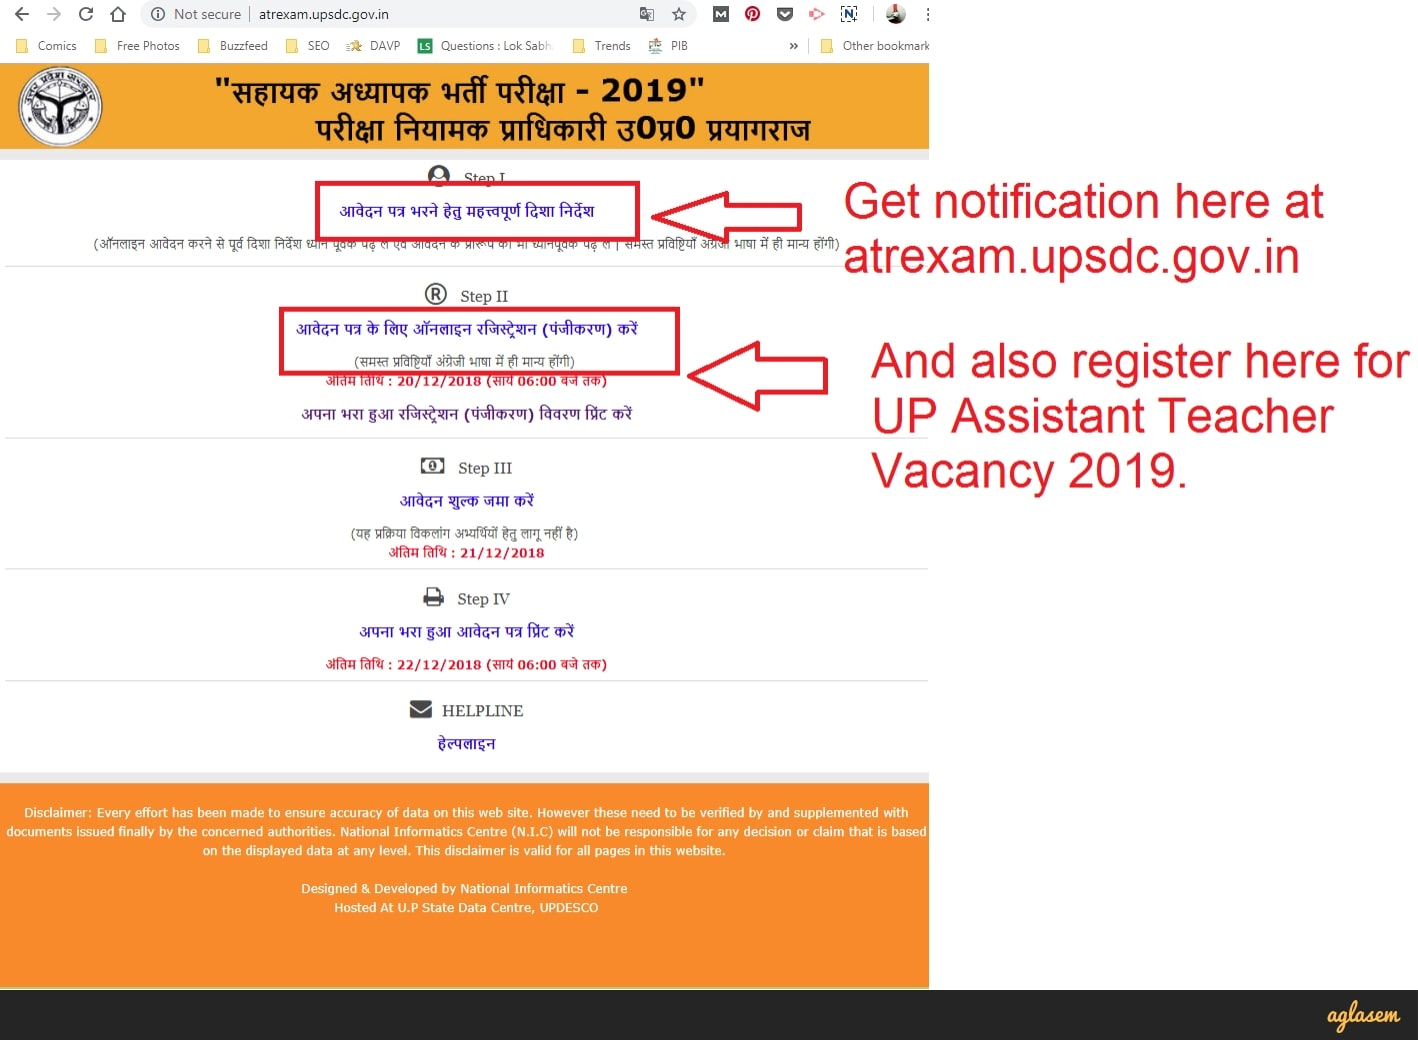 69000 UP Assistant Teacher Vacancy atrexam.upsdc.gov.in